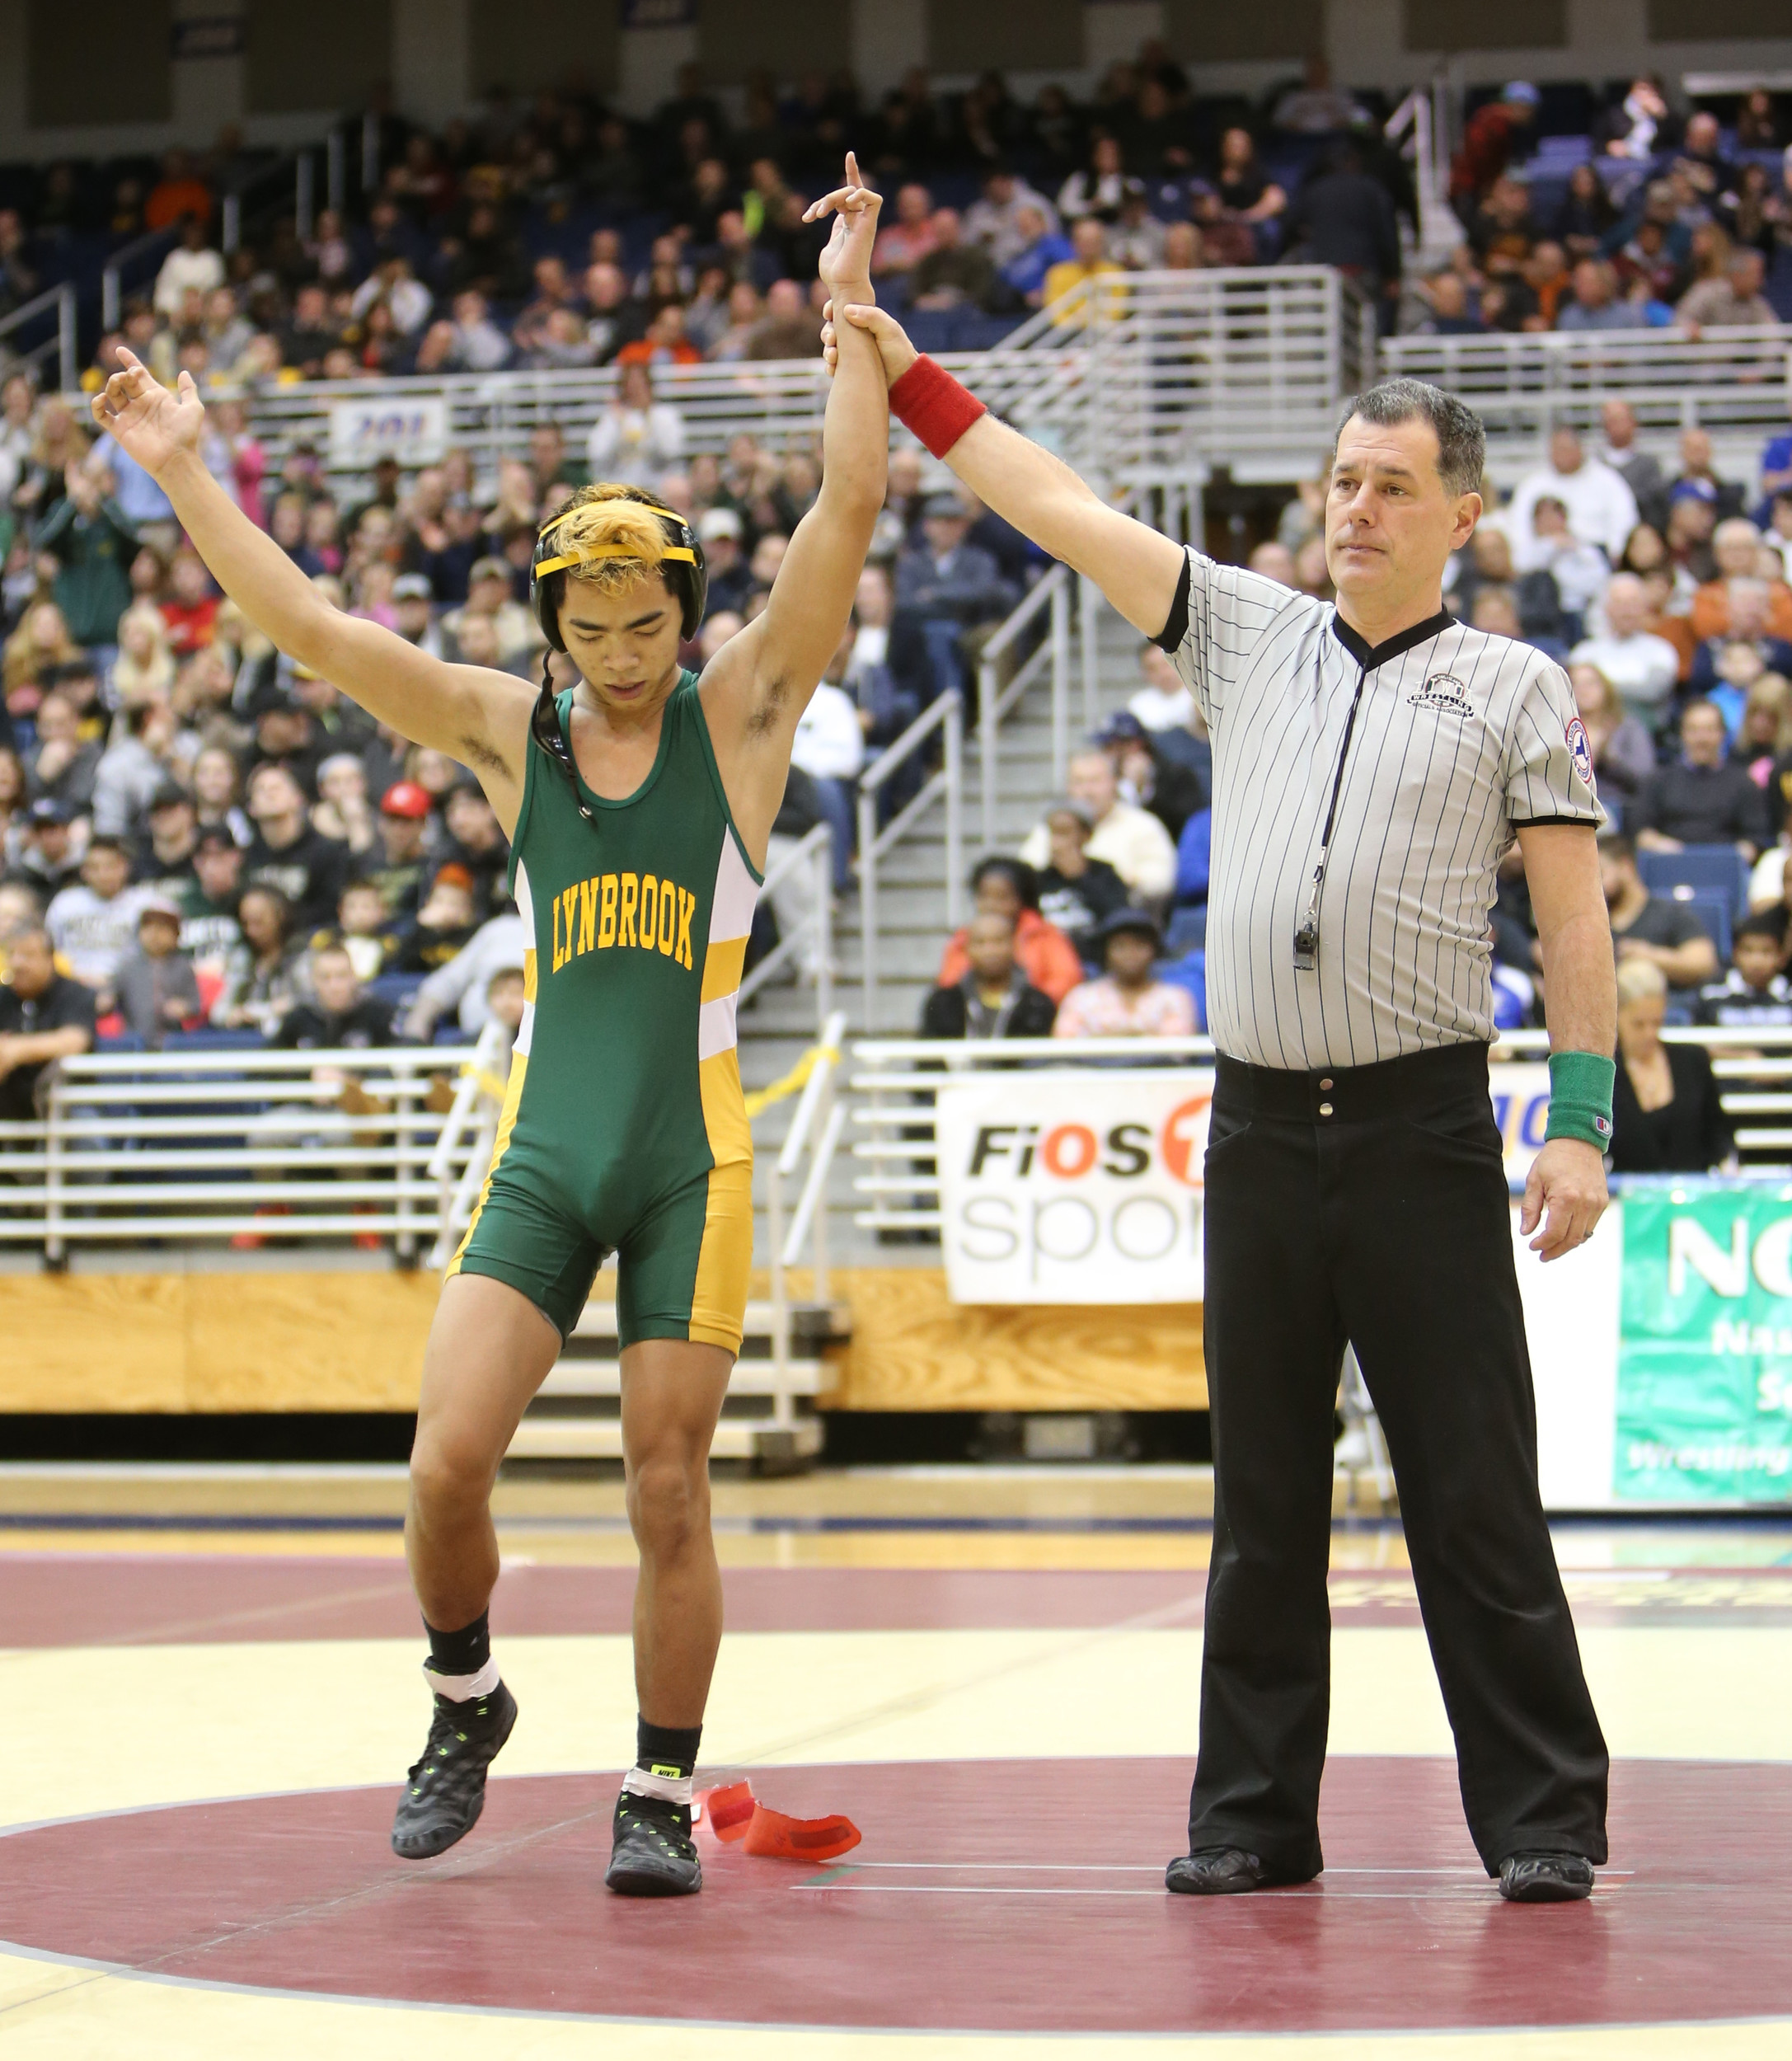 Junior Joe Becker became Lynbrook's first county wrestling champion in a dozen years when he captured the 106-pound crown last Sunday night.